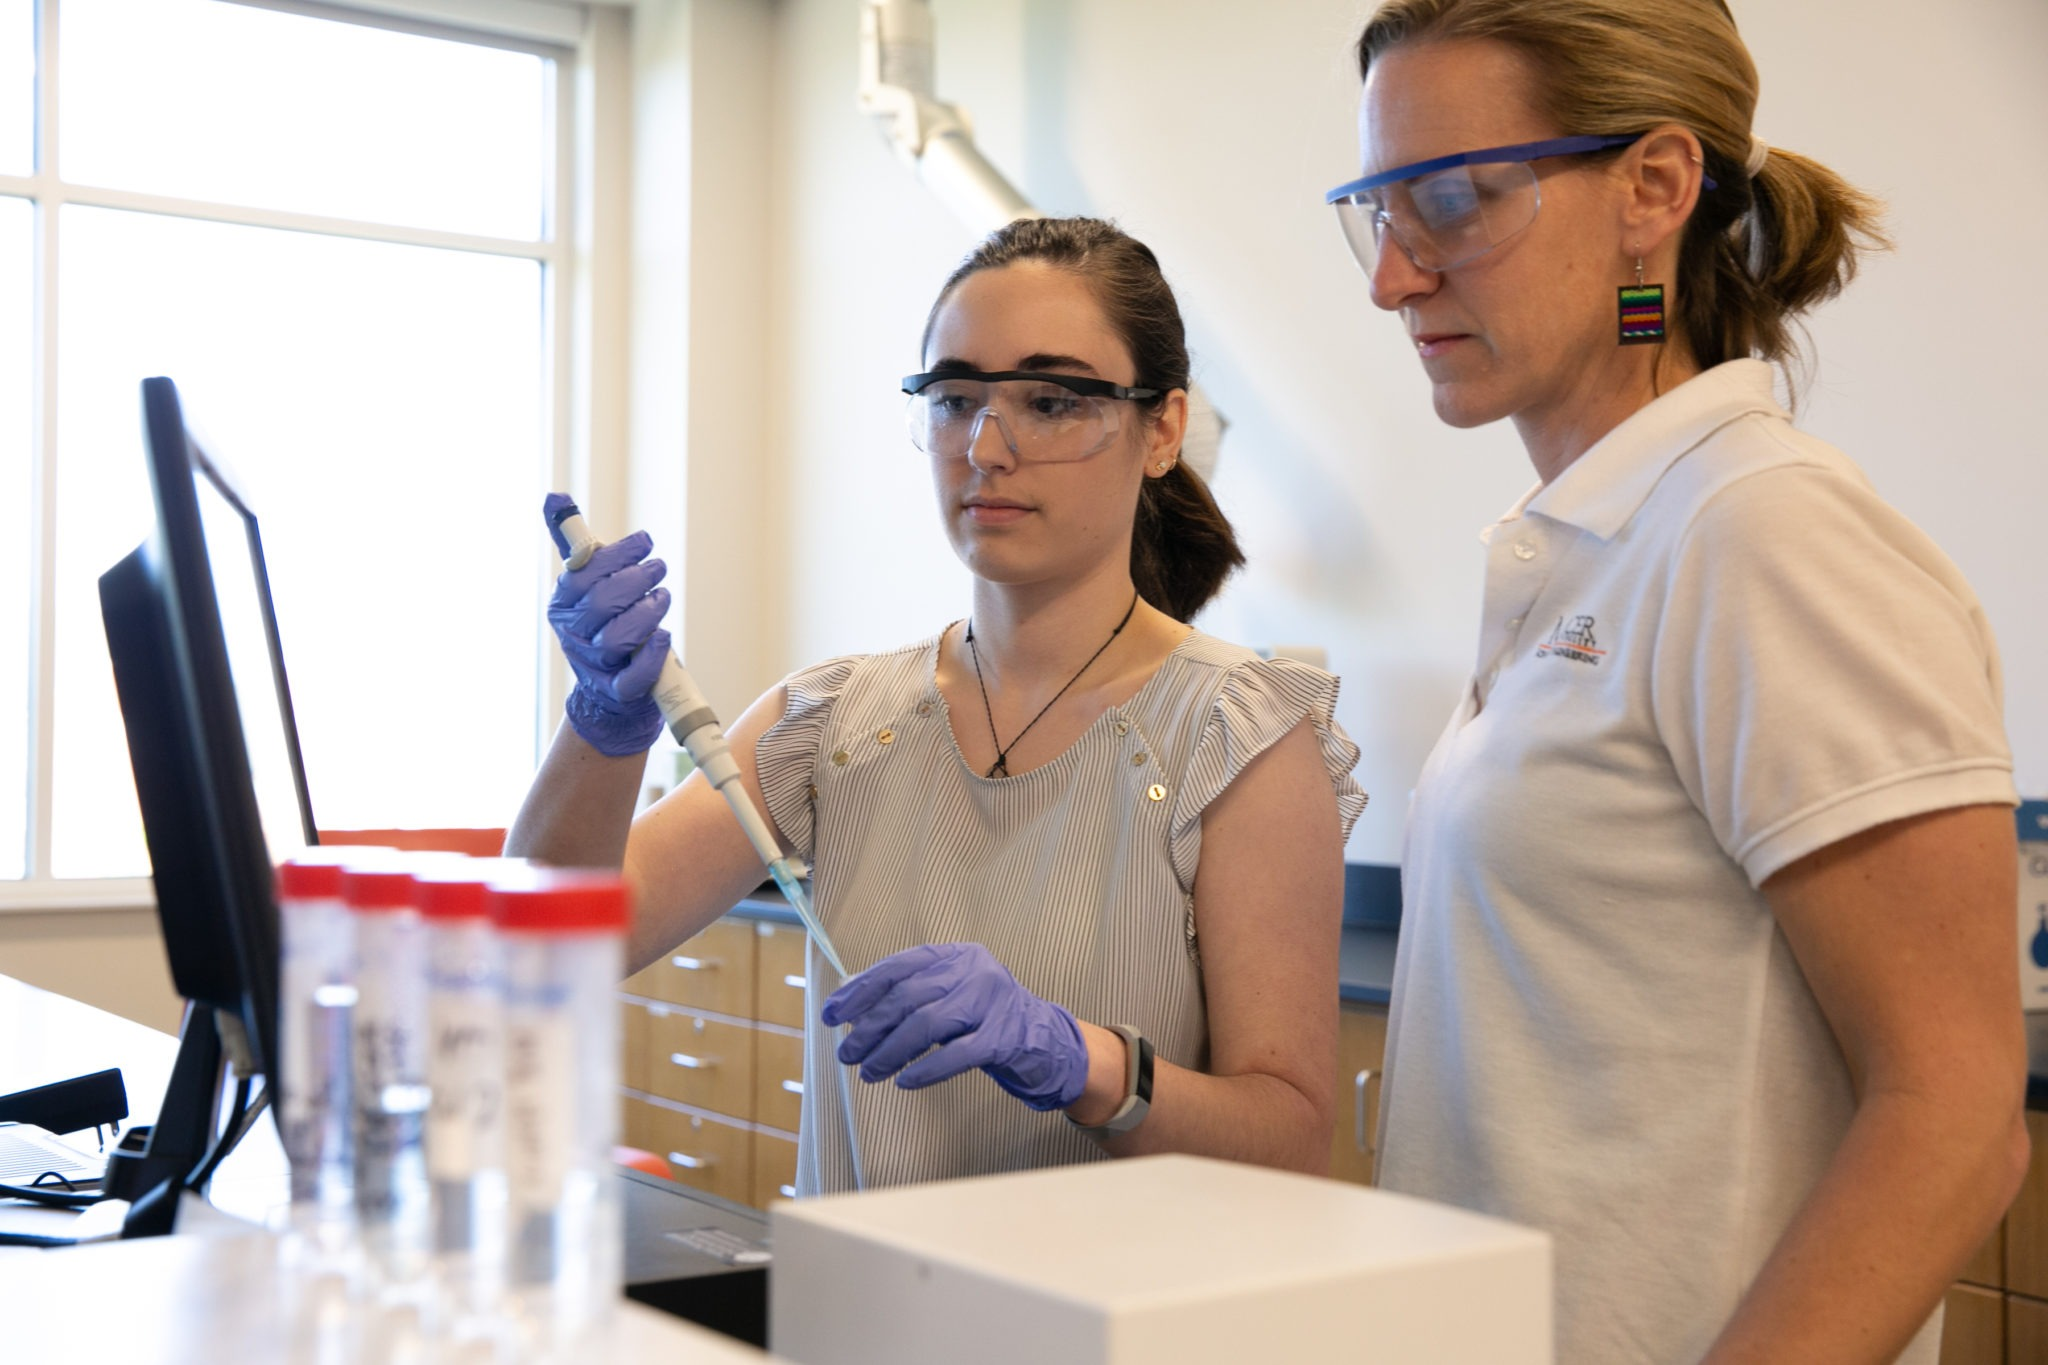 Mercer junior Amanda Cimino, a 2019 Goldwater Scholar, conducts research in the lab of Dr. Joanna Thomas, assistant professor of biomedical engineering.